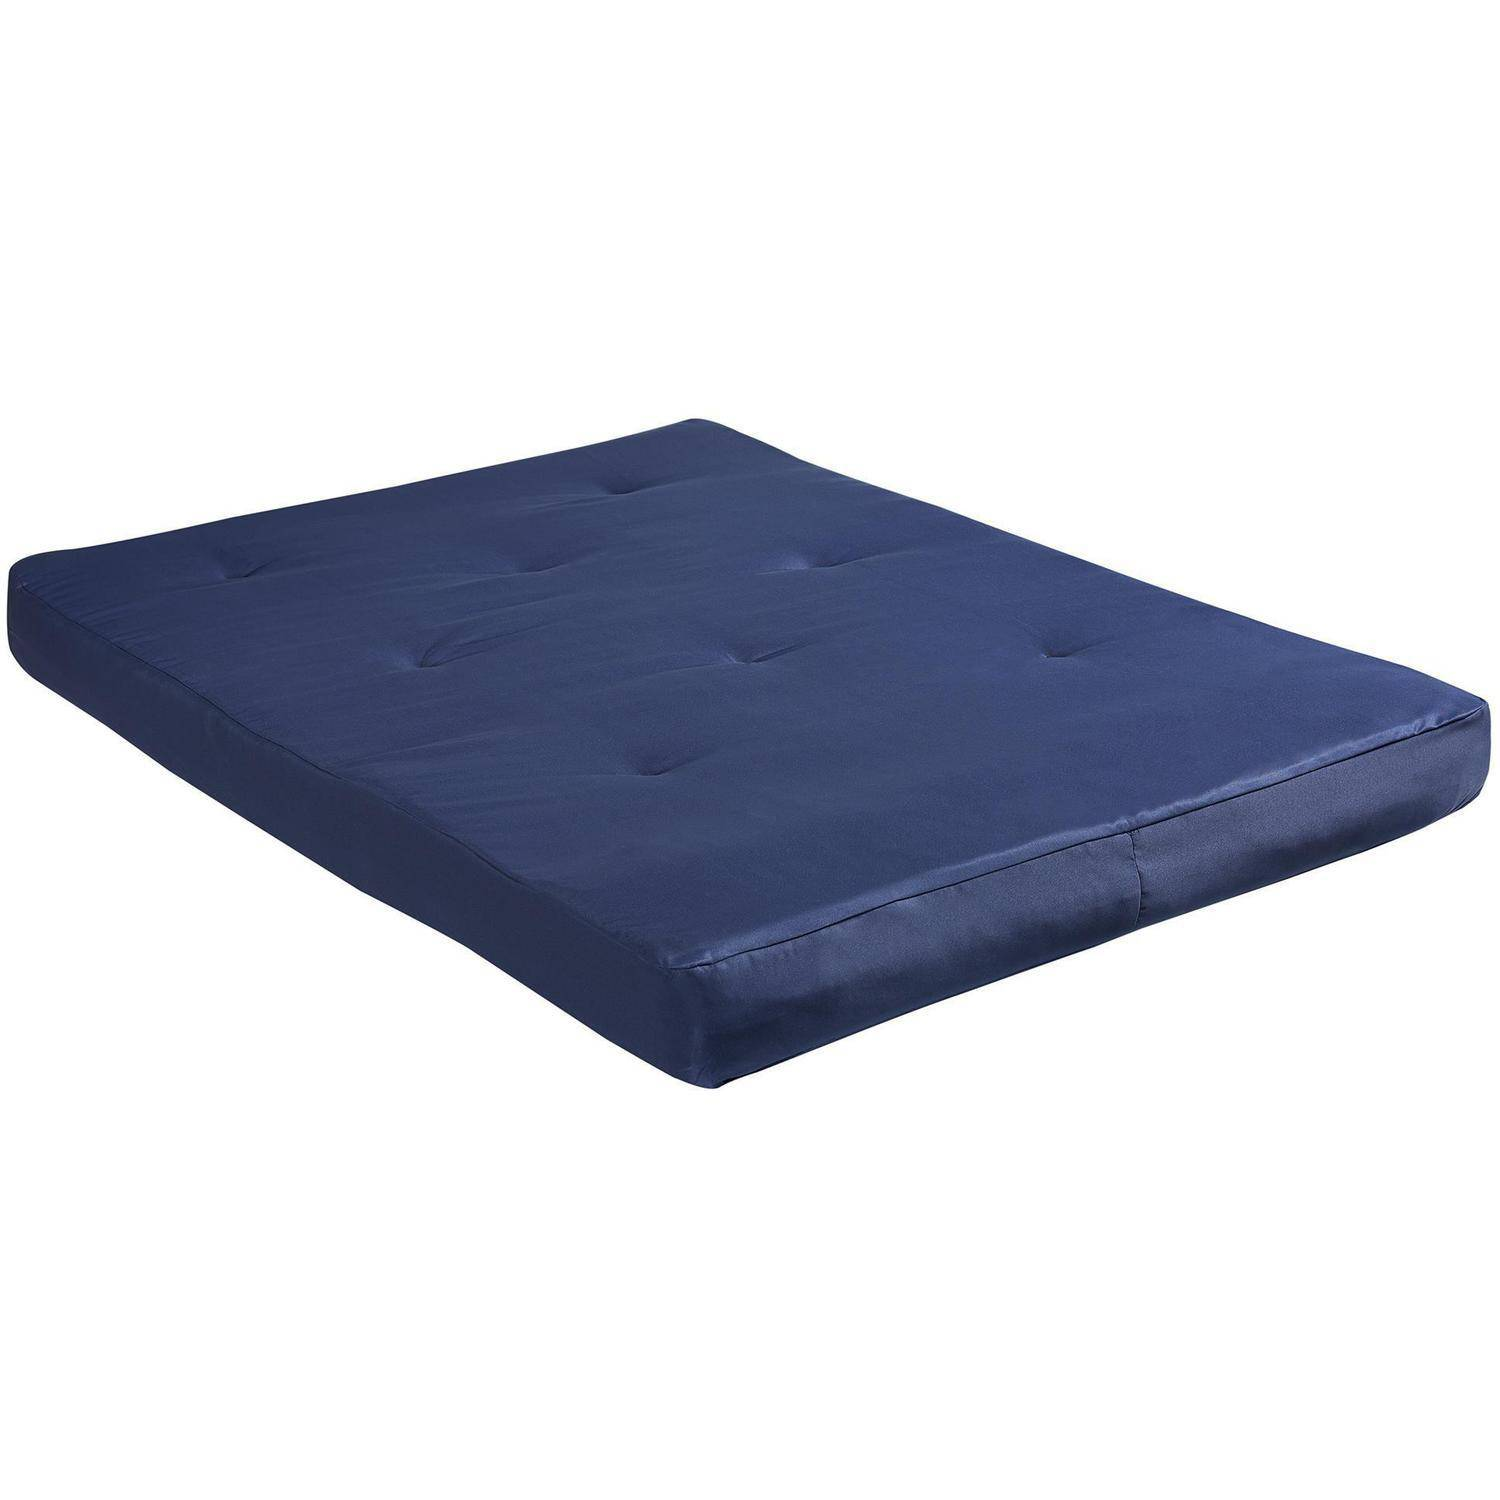 dual size gel of best mattress pictures home cotton king full twill amazon inch memory mozaic futon